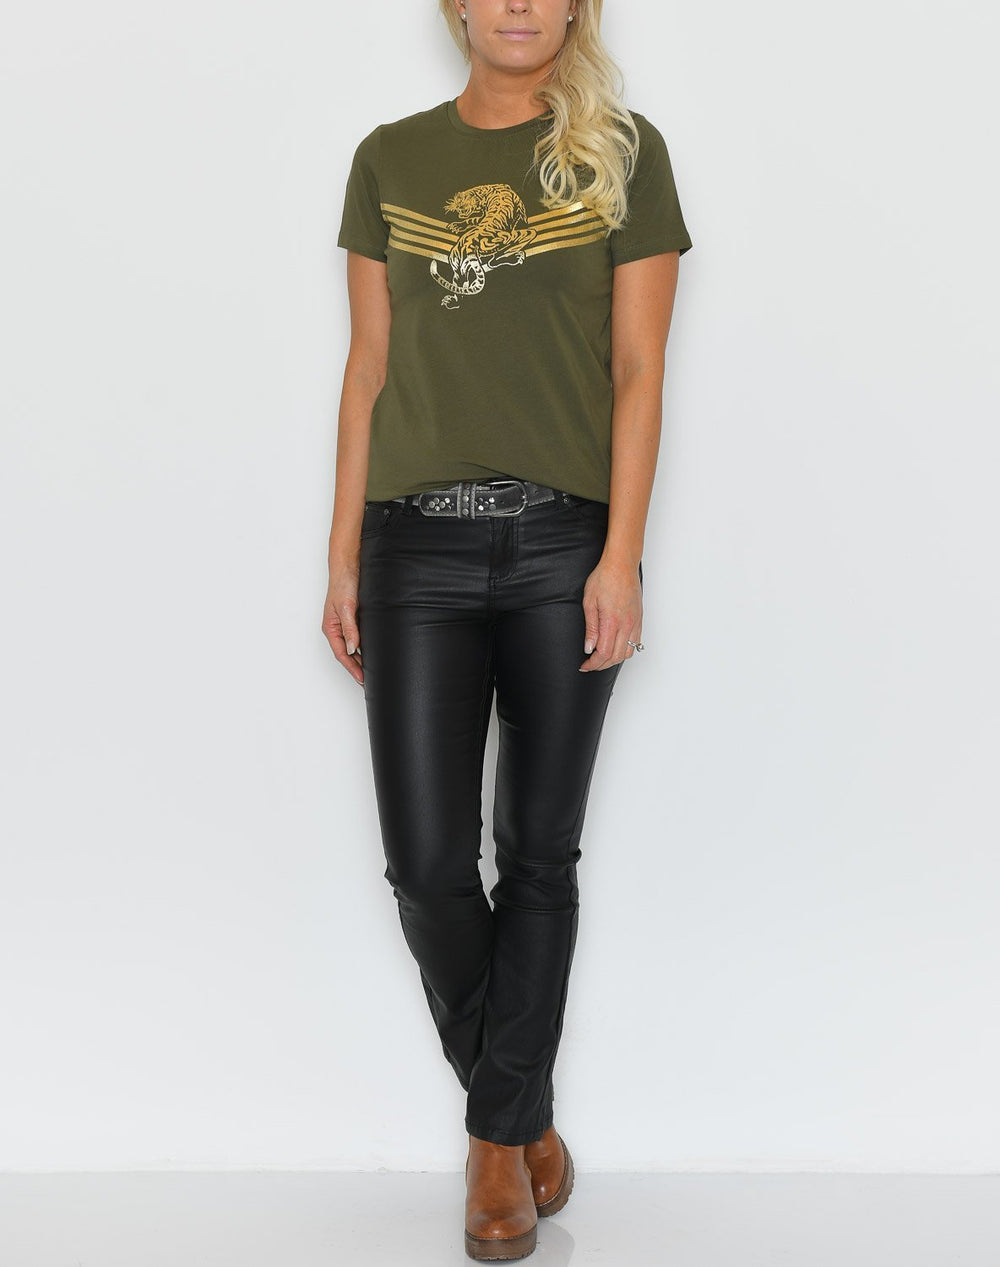 B.young BXSindie t-shirt olive night - Online-Mode